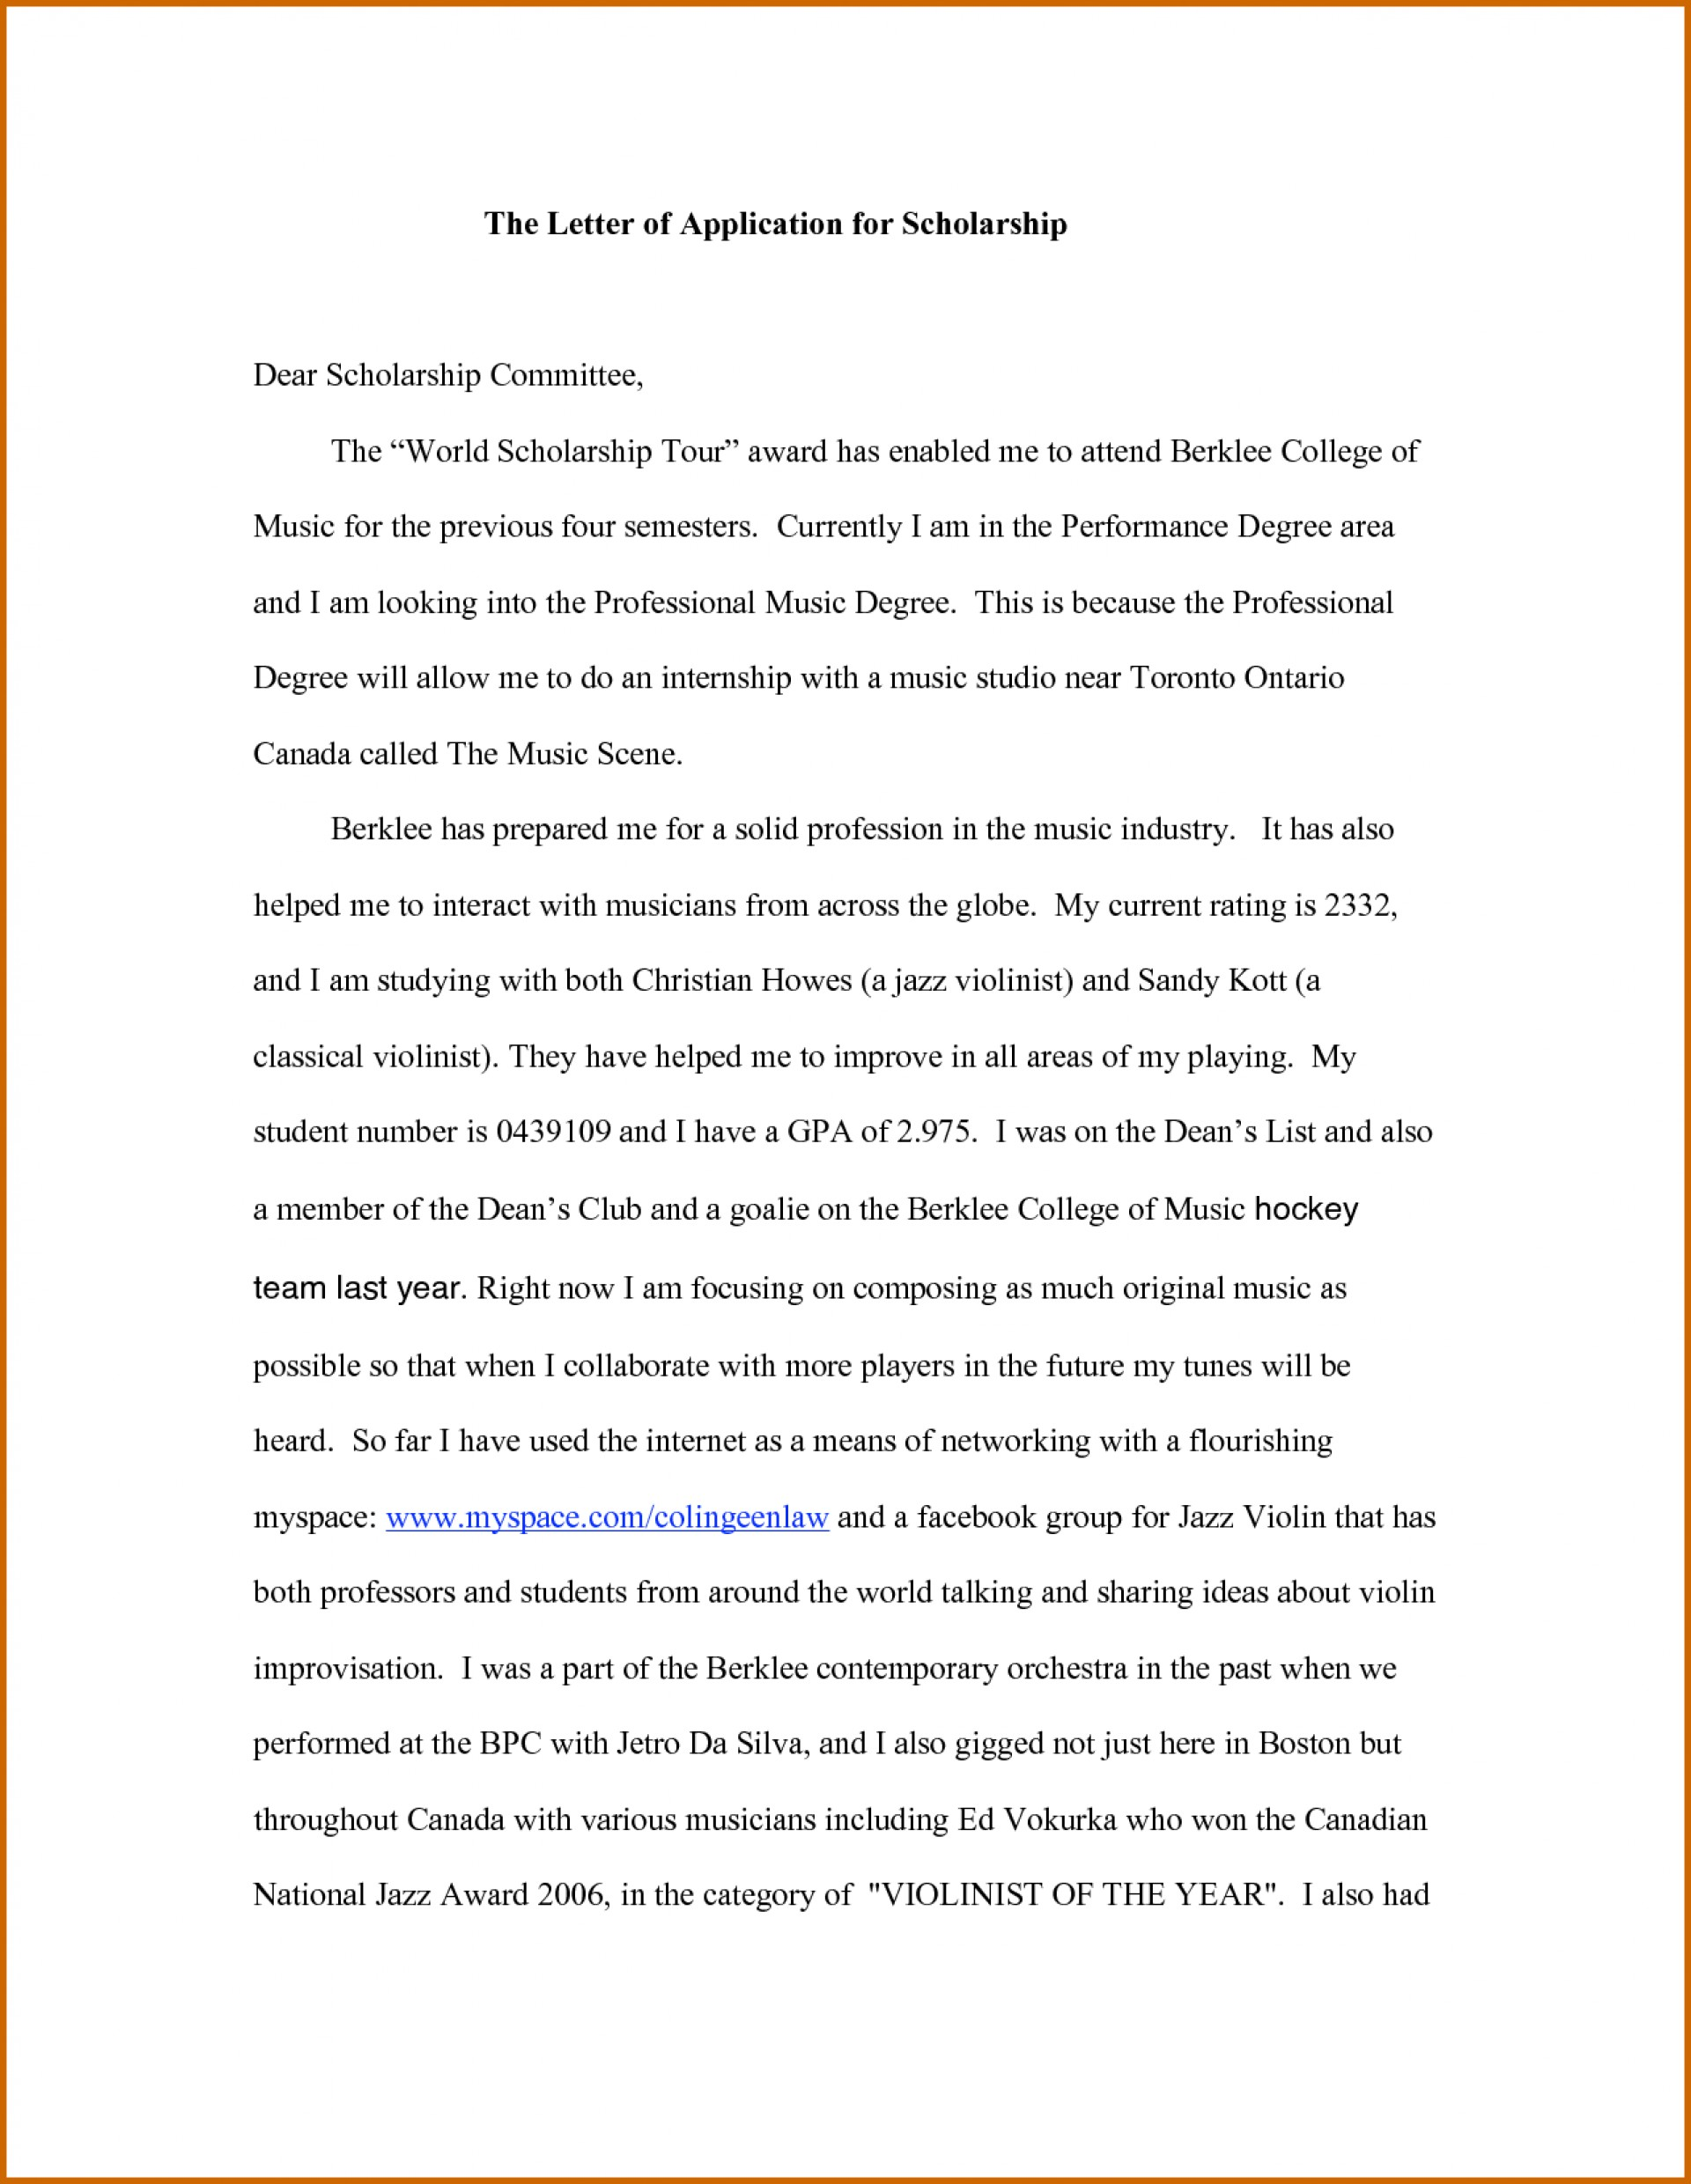 008 What To Write In Scholarship Essay Writer My How Personal Statement For Scholarships Application Good Shocking High School Students Study Abroad Examples 2018 Bachelors And Masters 1920